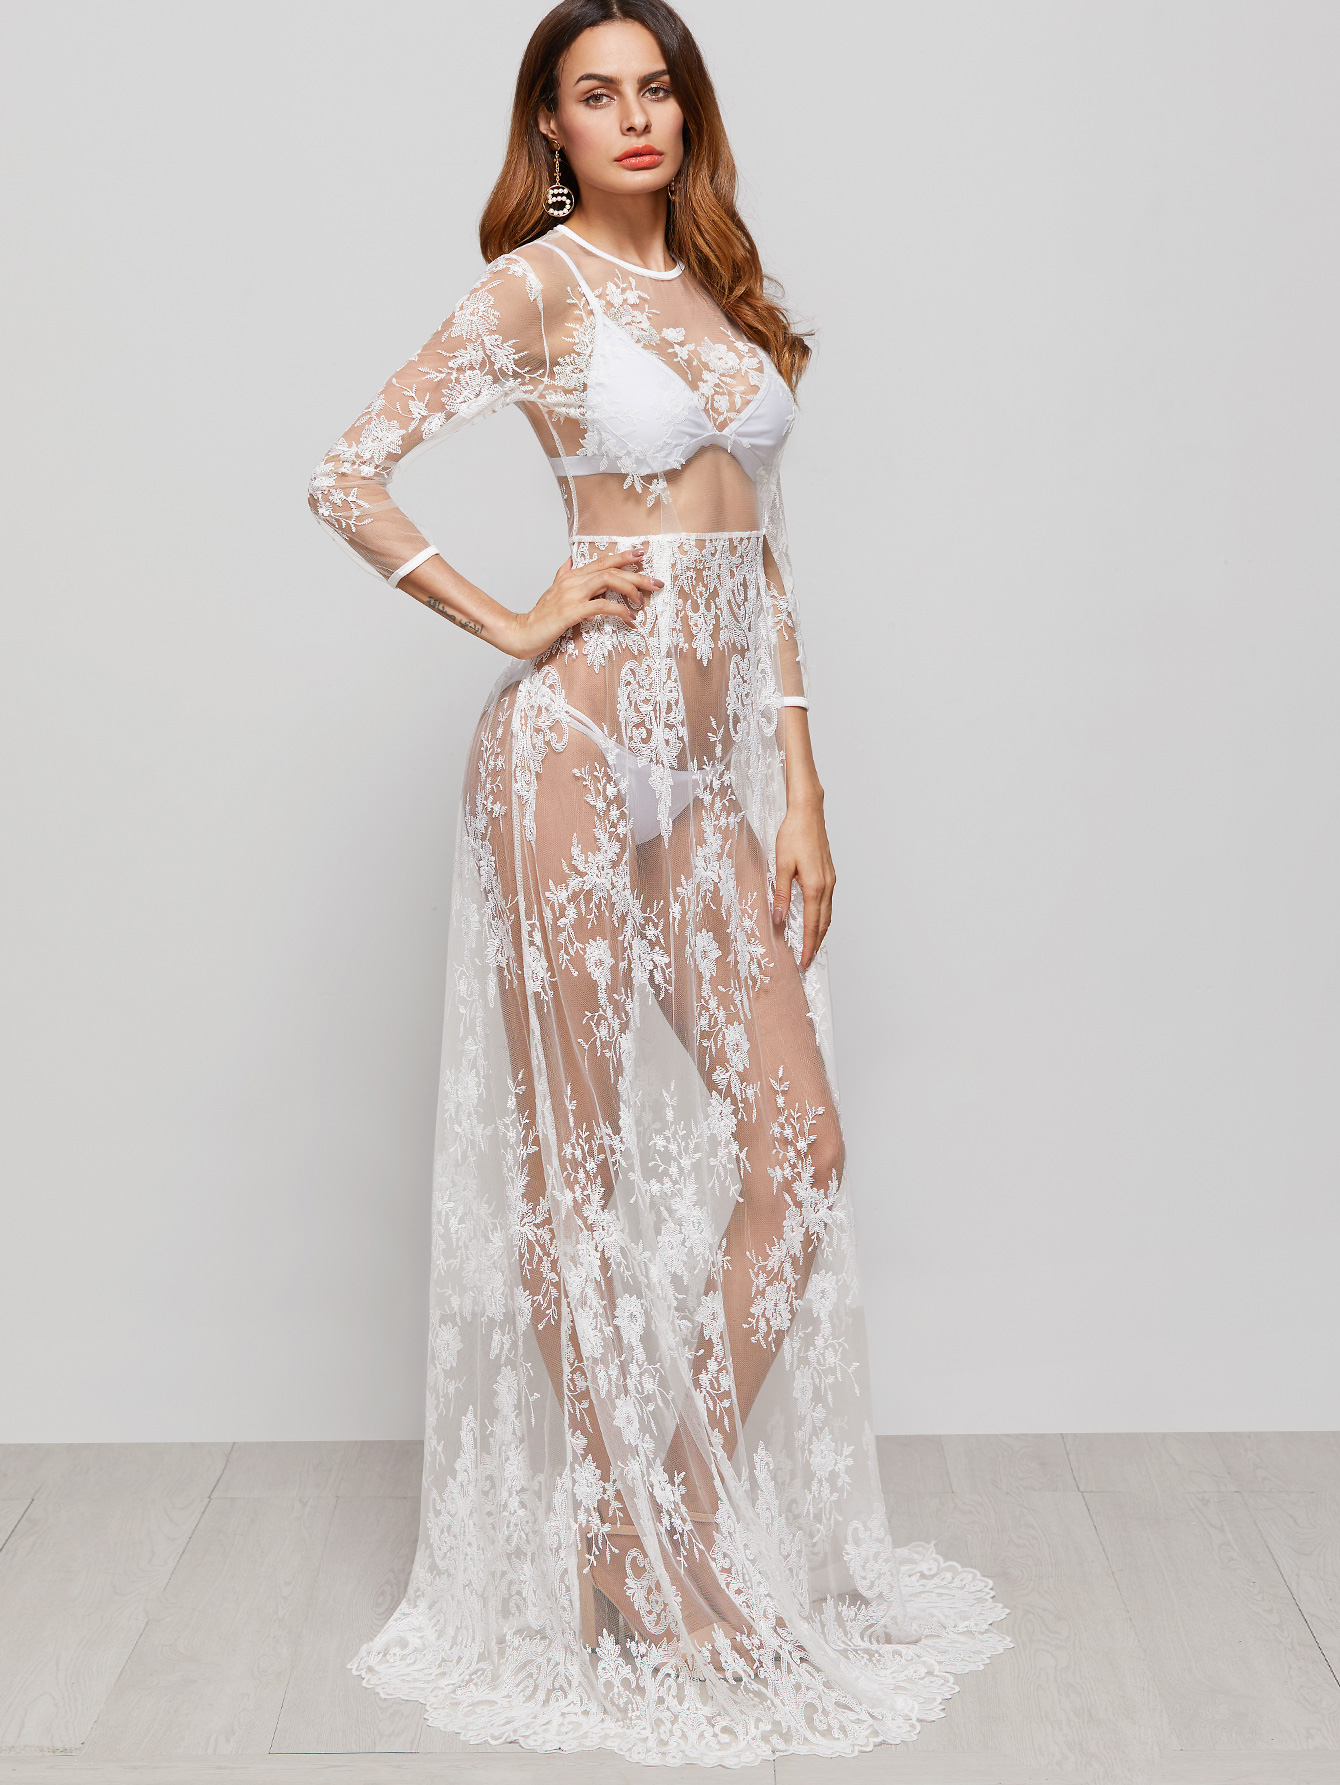 White Flower Embroidered Sheer Maxi Dress-$31.99 us.shein.com